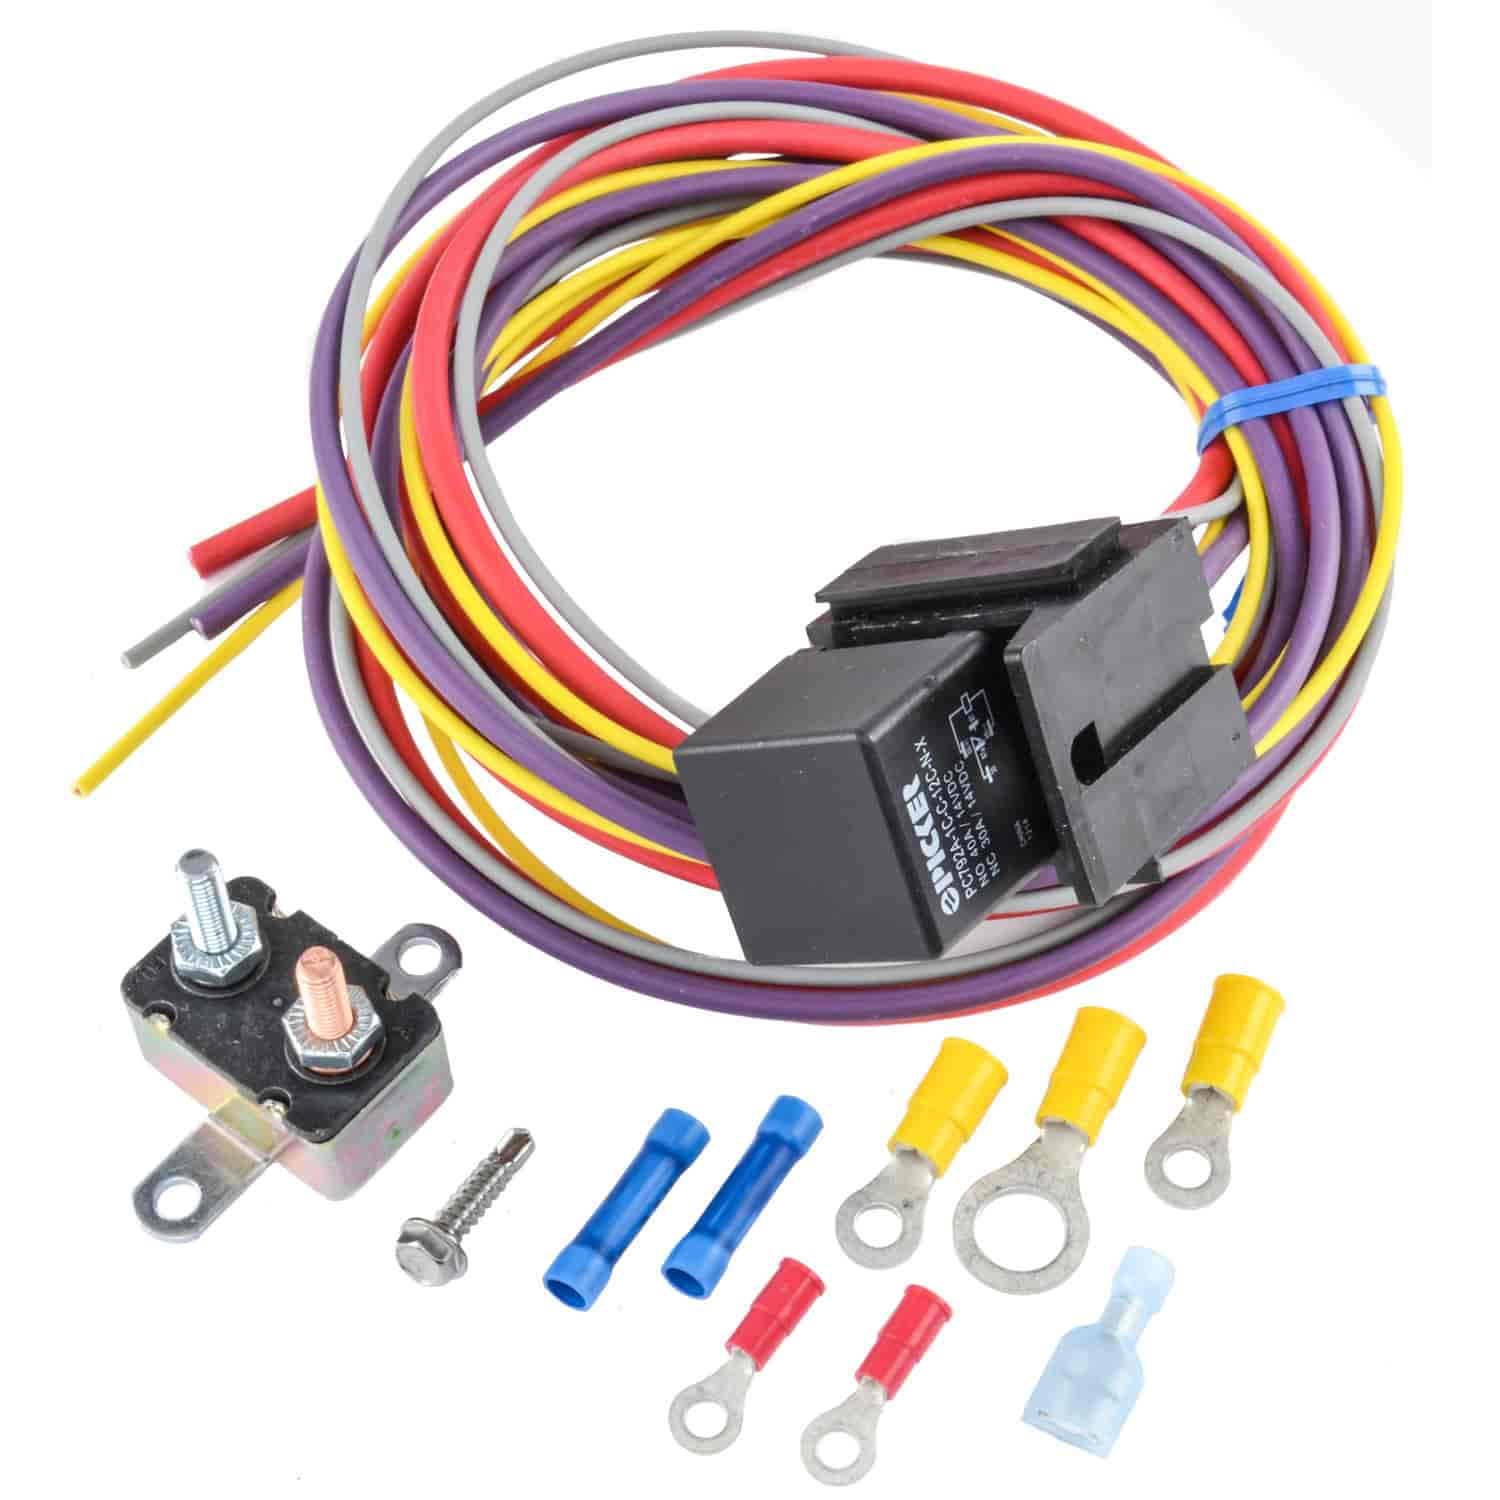 555 10559 jegs performance products 10559 manual controlled single fan VW Wiring Harness Kits at gsmx.co